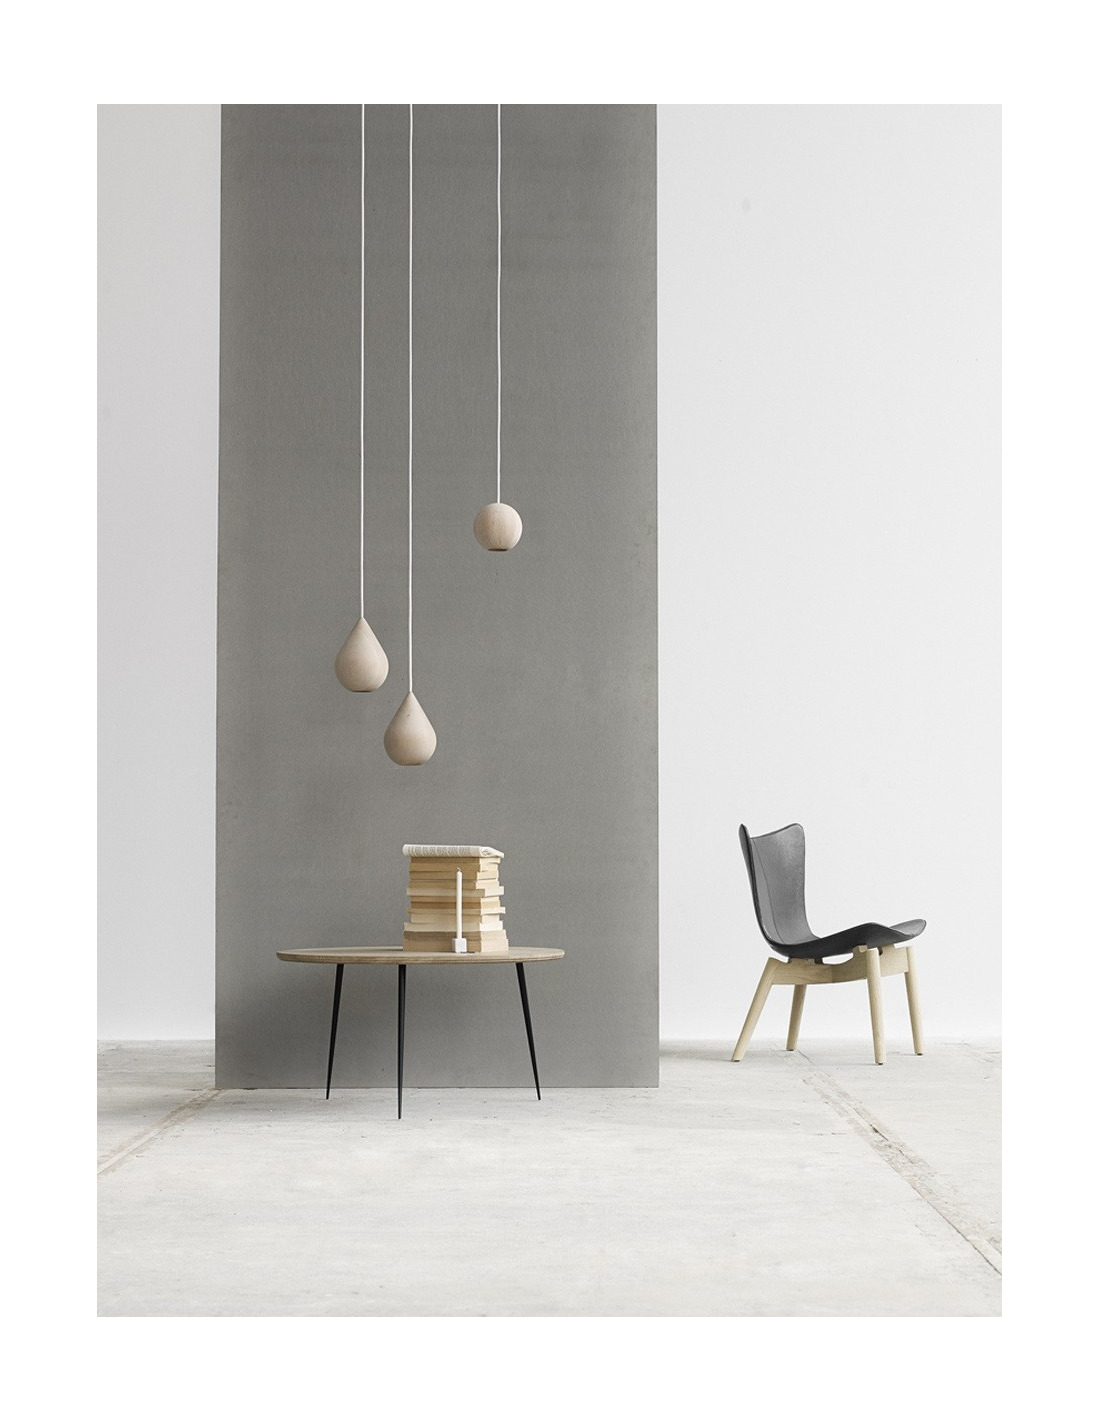 suspension led en bois liuku drop au design scandinave en forme de goutte d 39 eau otoko. Black Bedroom Furniture Sets. Home Design Ideas